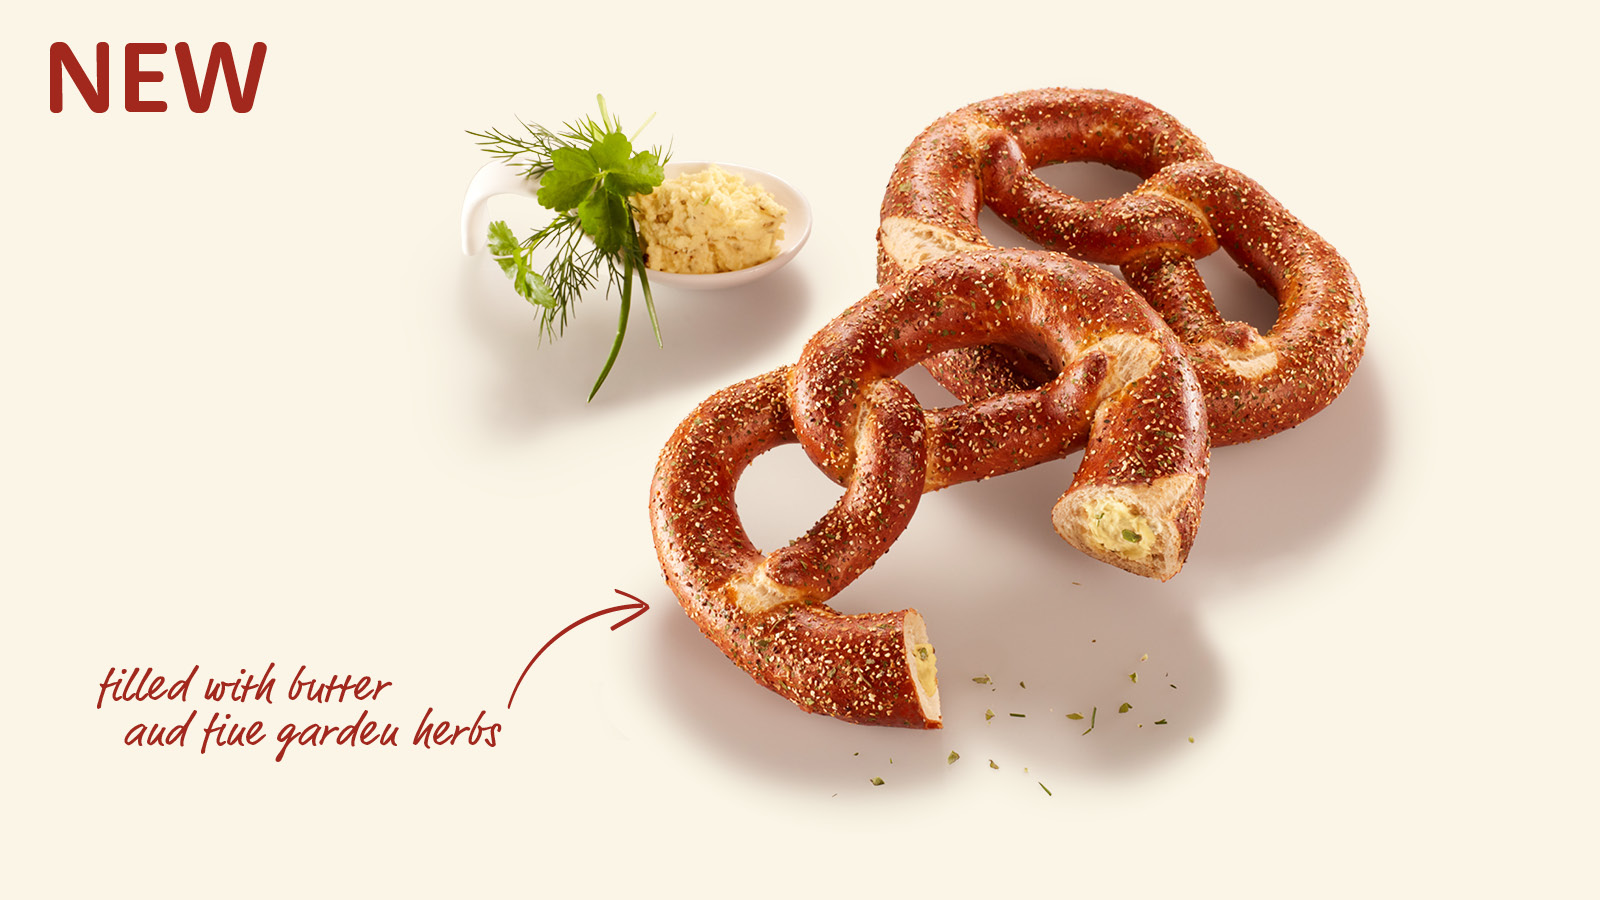 Pretzel filled with butter and fine garden herbs